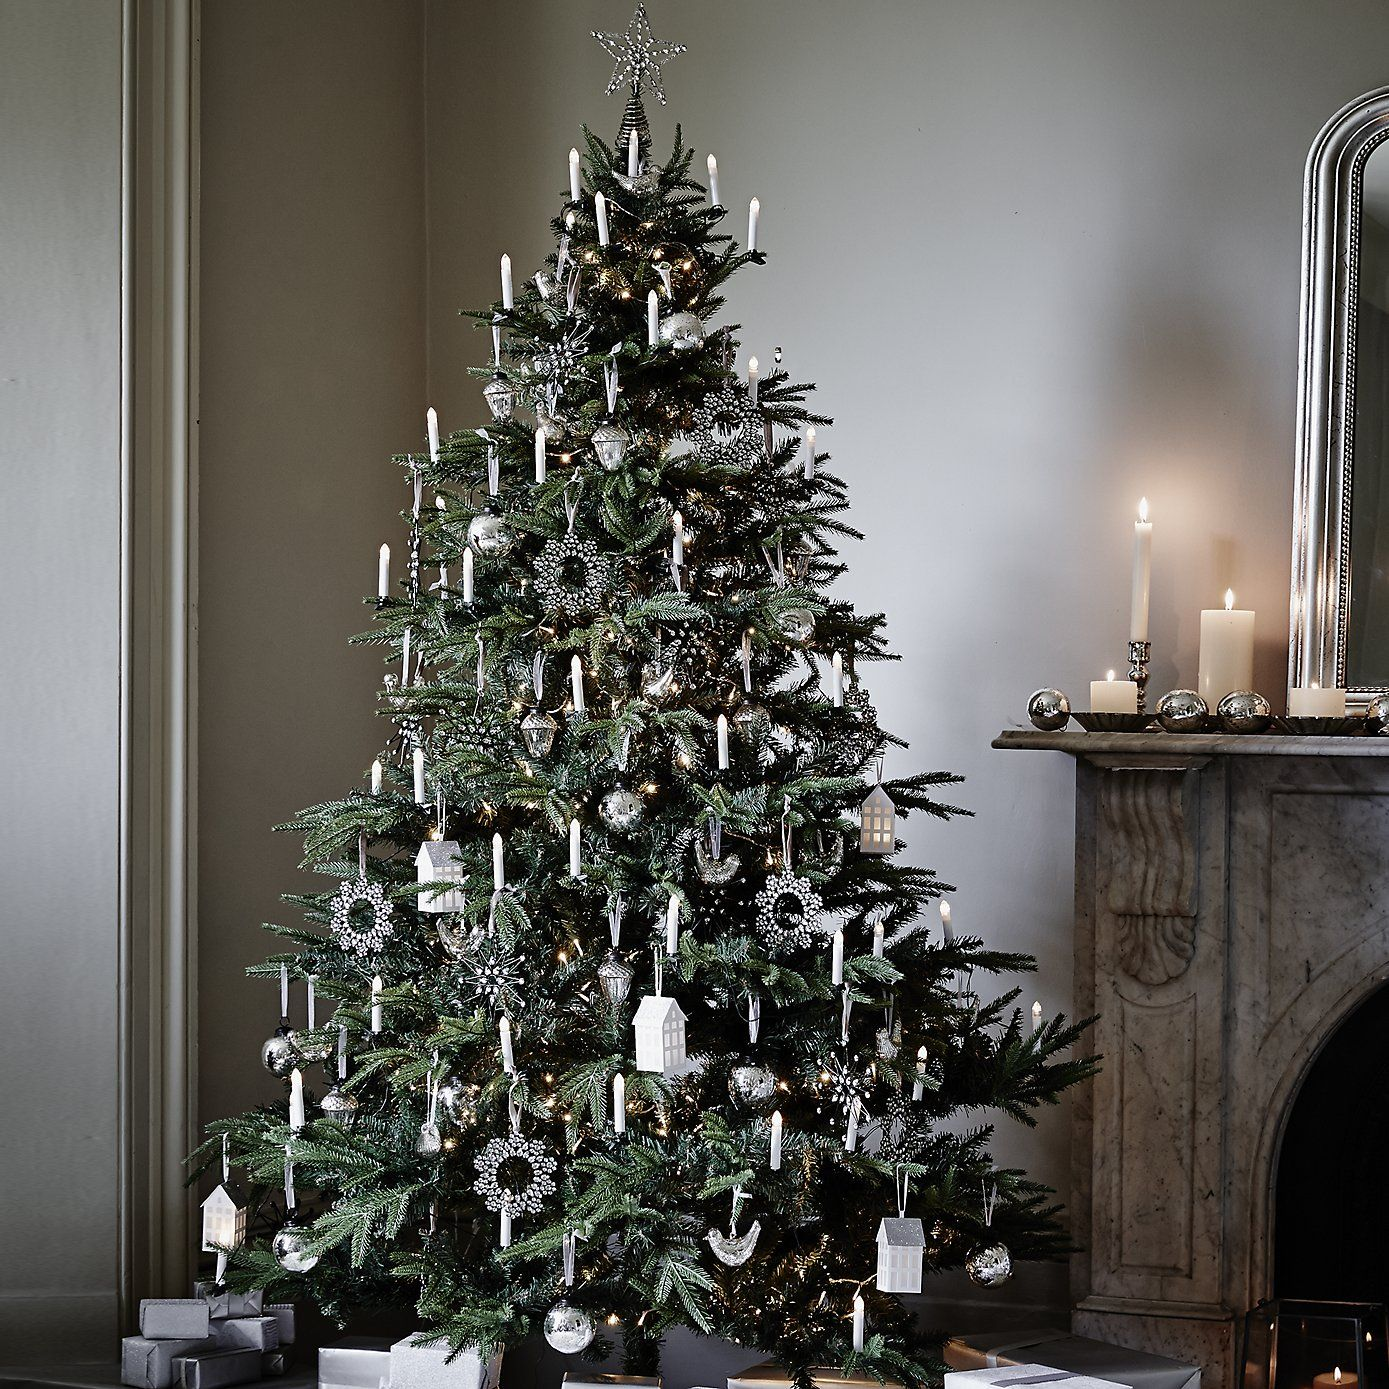 White christmas decorations for a tree - How To Decorate Your Christmas Tree Christmas Interiors Decorating Ideas Red Online